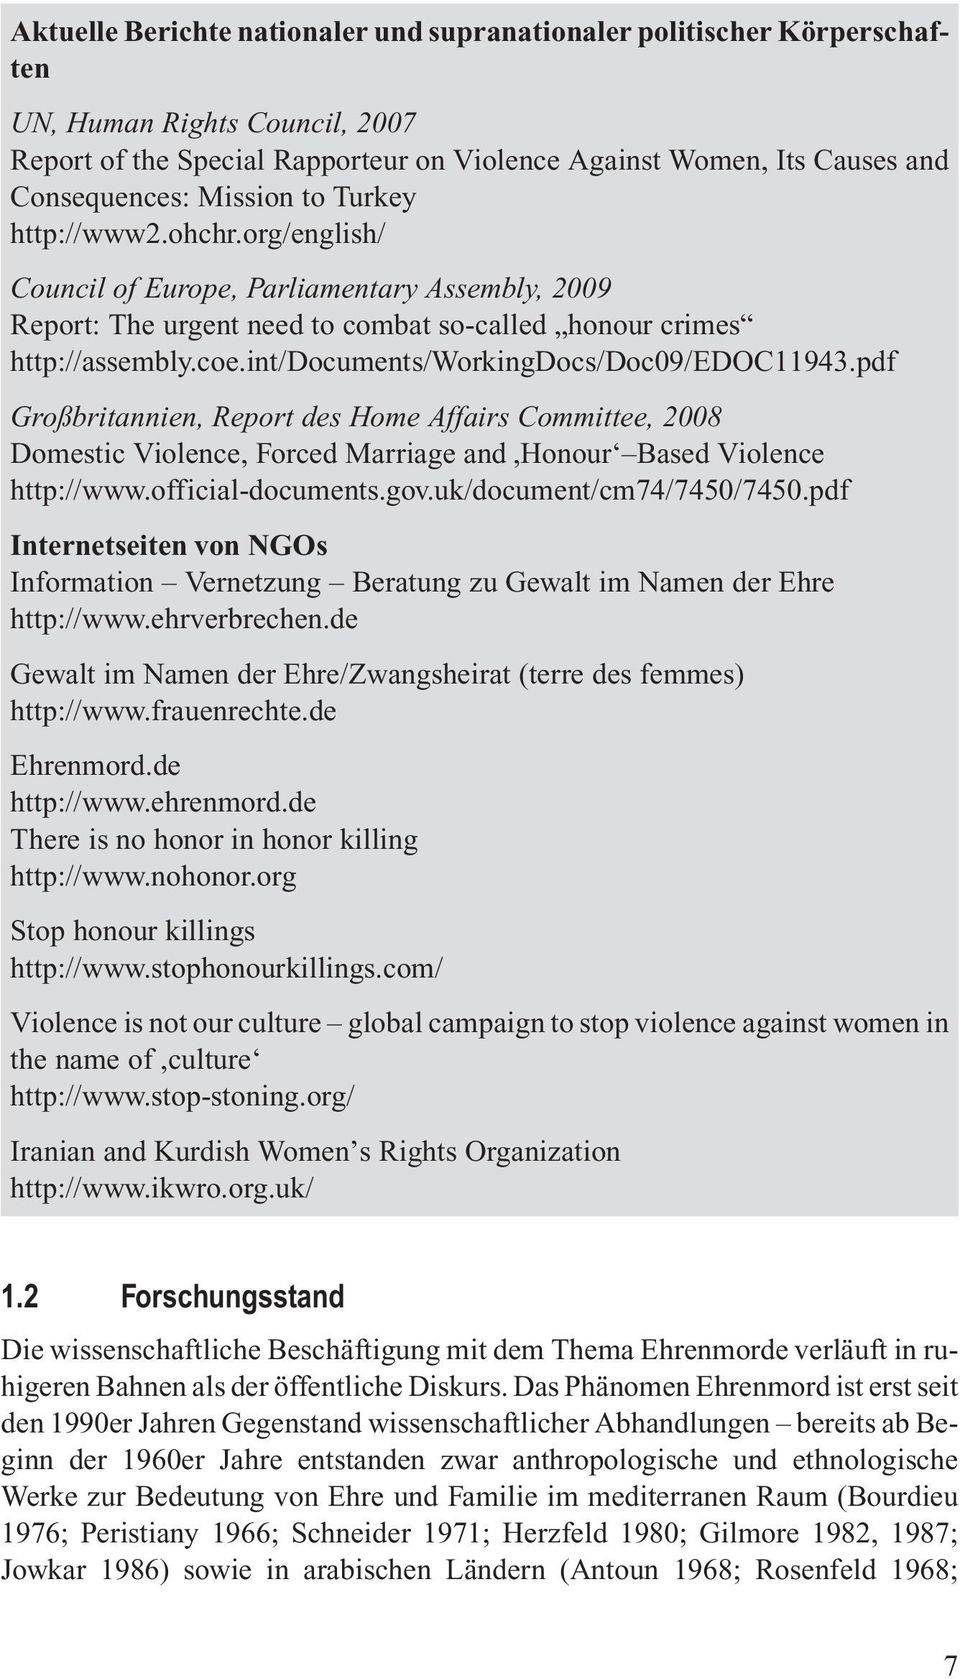 int/documents/workingdocs/doc09/edoc11943.pdf Großbritannien, Report des Home Affairs Committee, 2008 Domestic Violence, Forced Marriage and,honour Based Violence http://www.official-documents.gov.